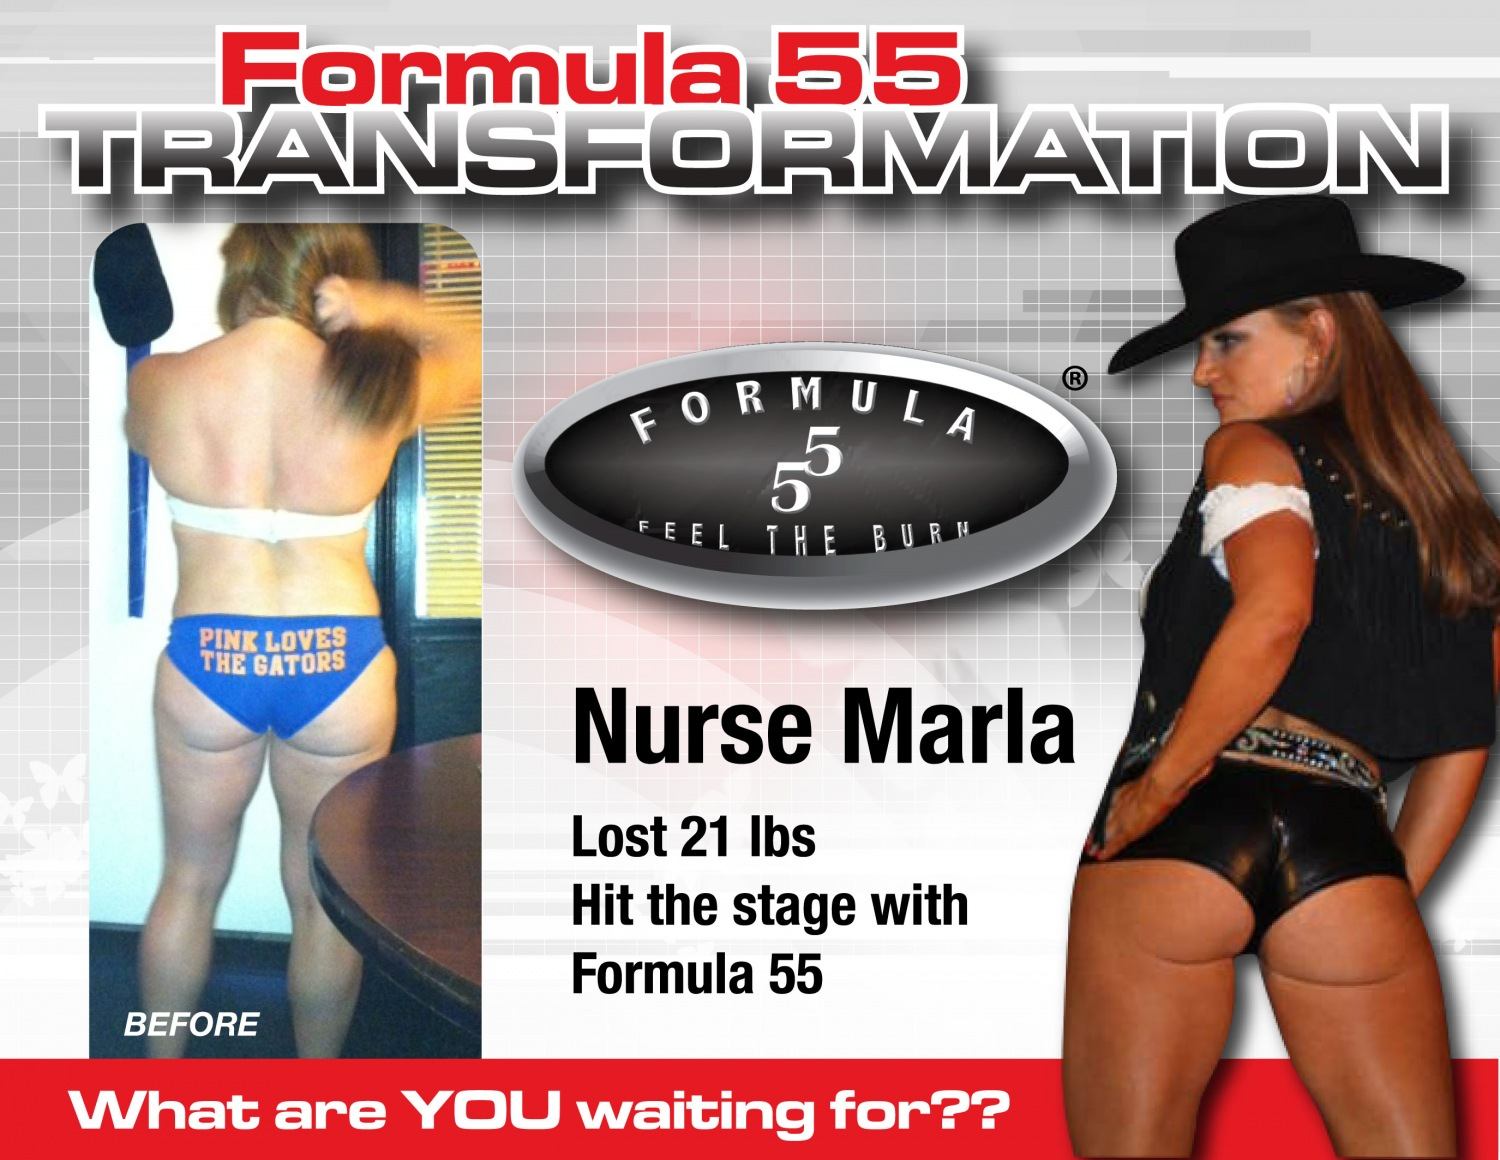 form-55-Transformation-Marla-back.jpg